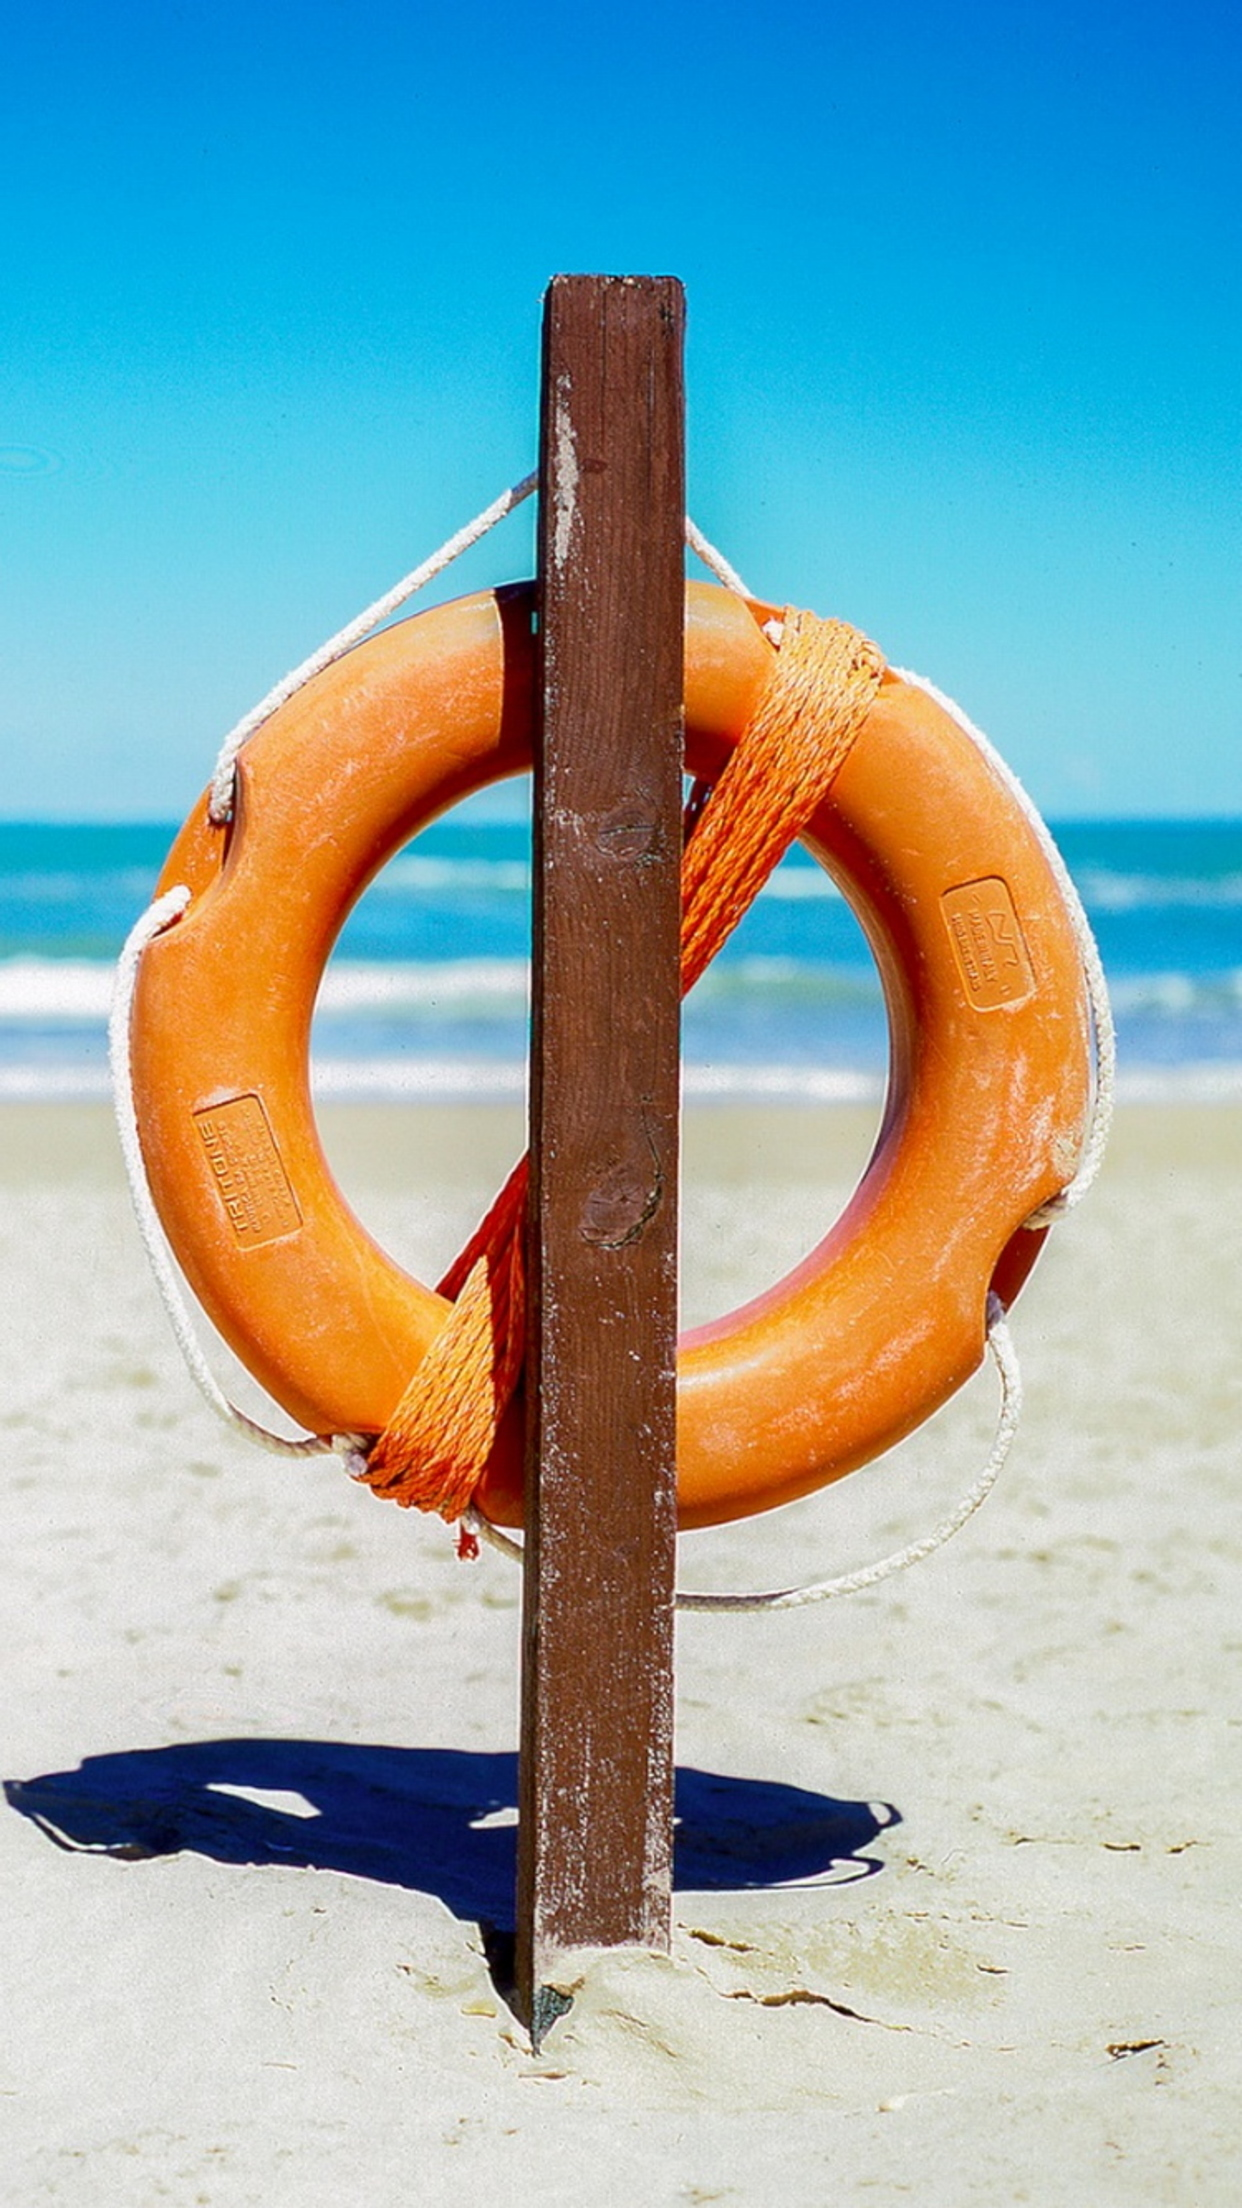 plage bouee 3Wallpapers iPhone Parallax Beach buoy